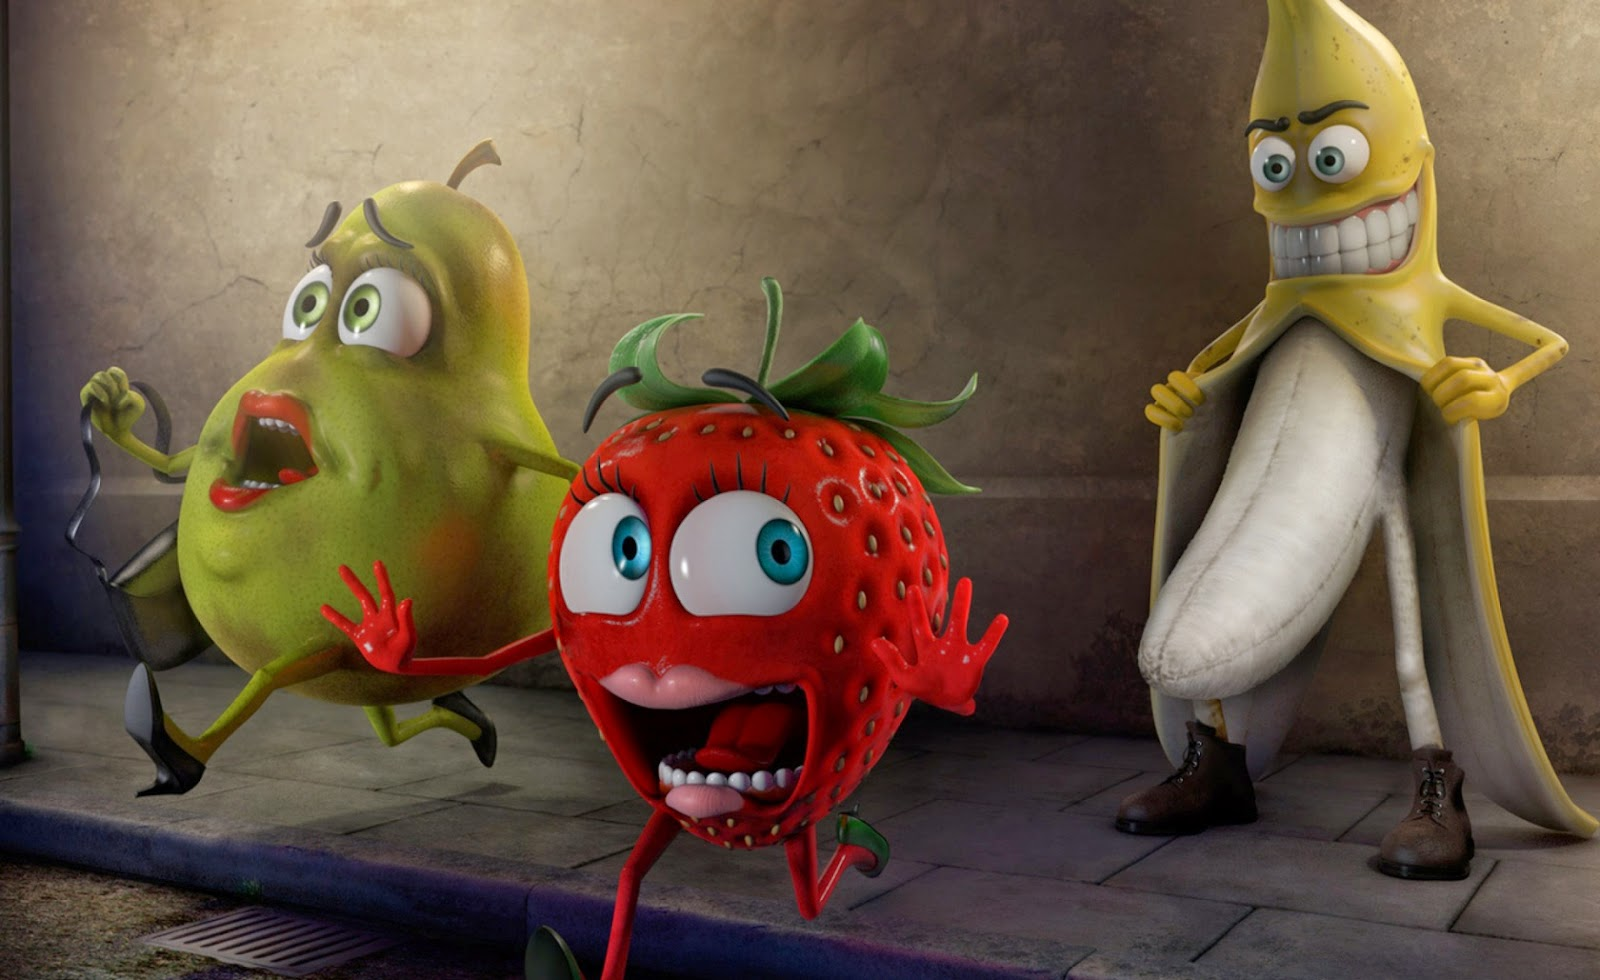 Must Seen 2015 Funny Vegetables Wallpaper